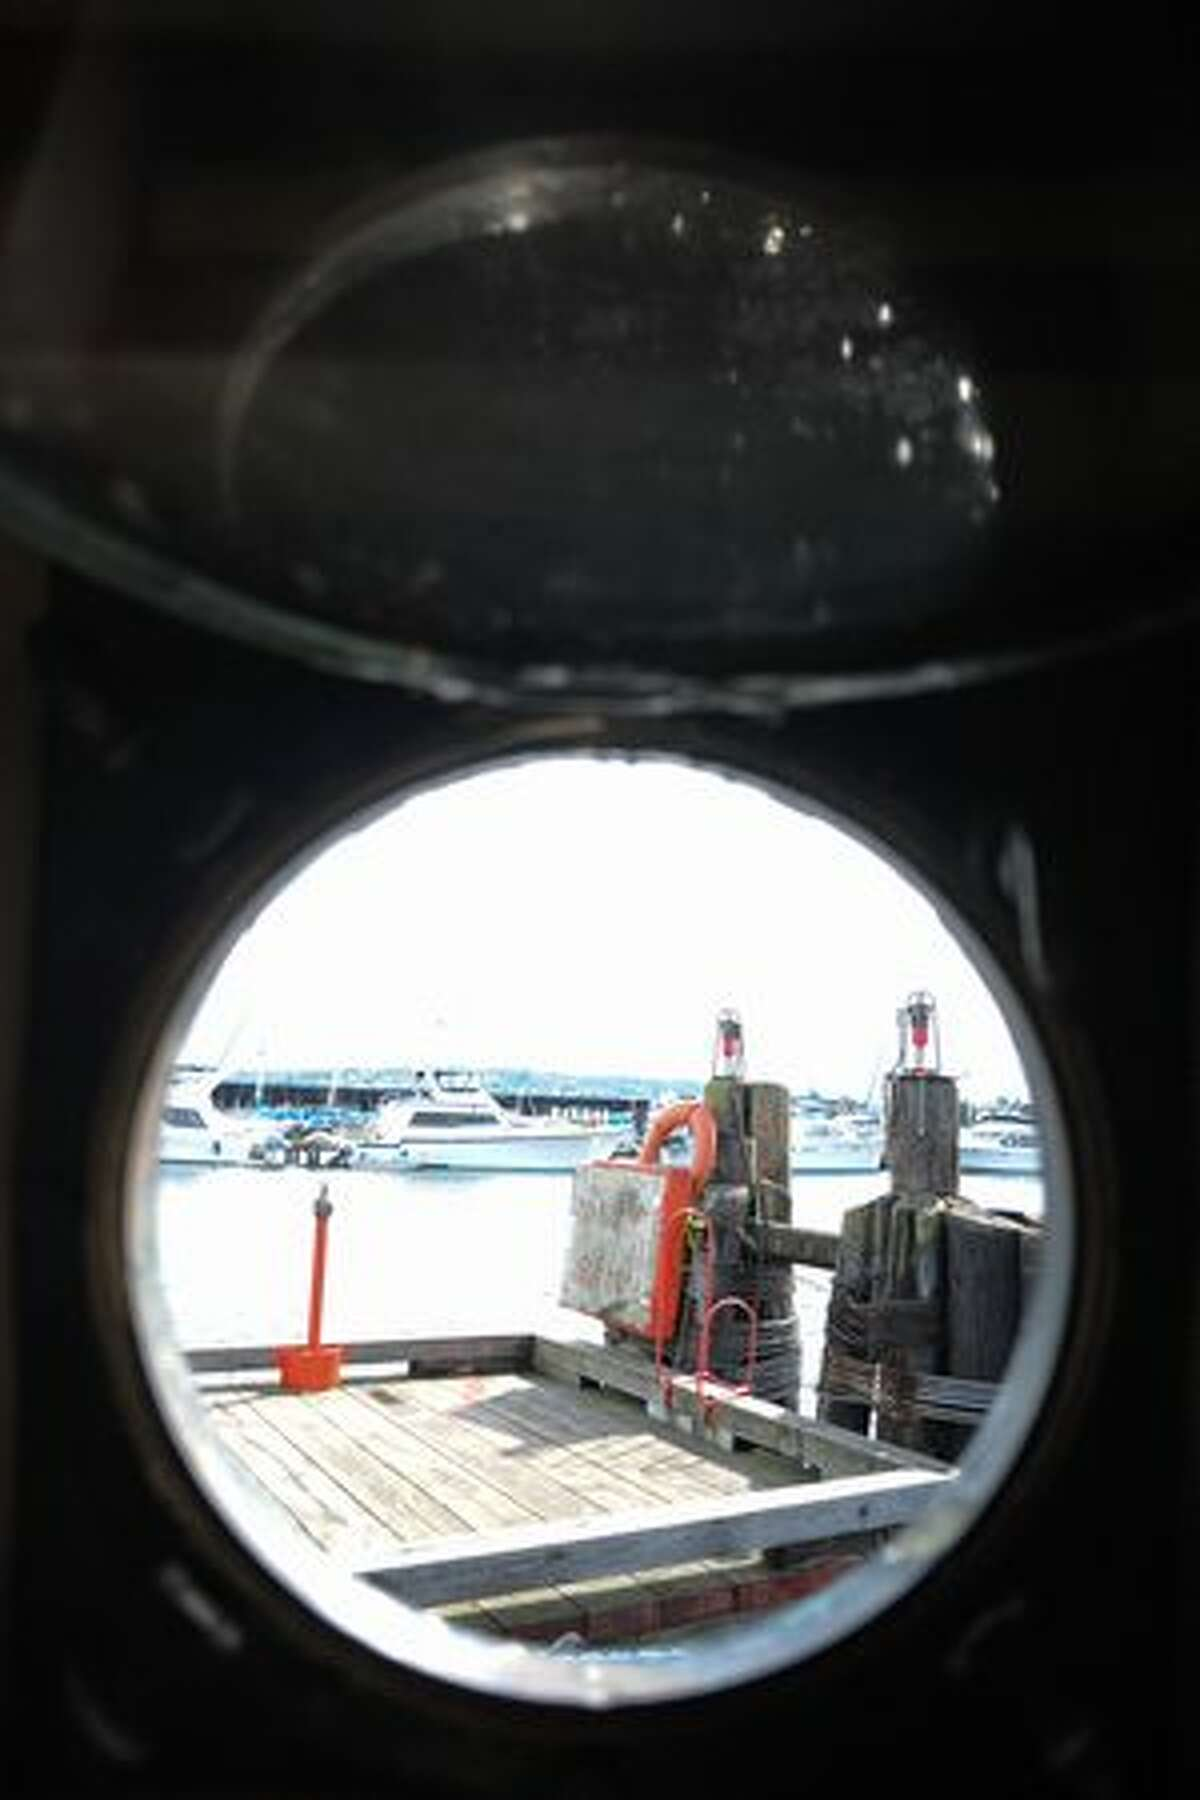 A view of the dock through a hatch.